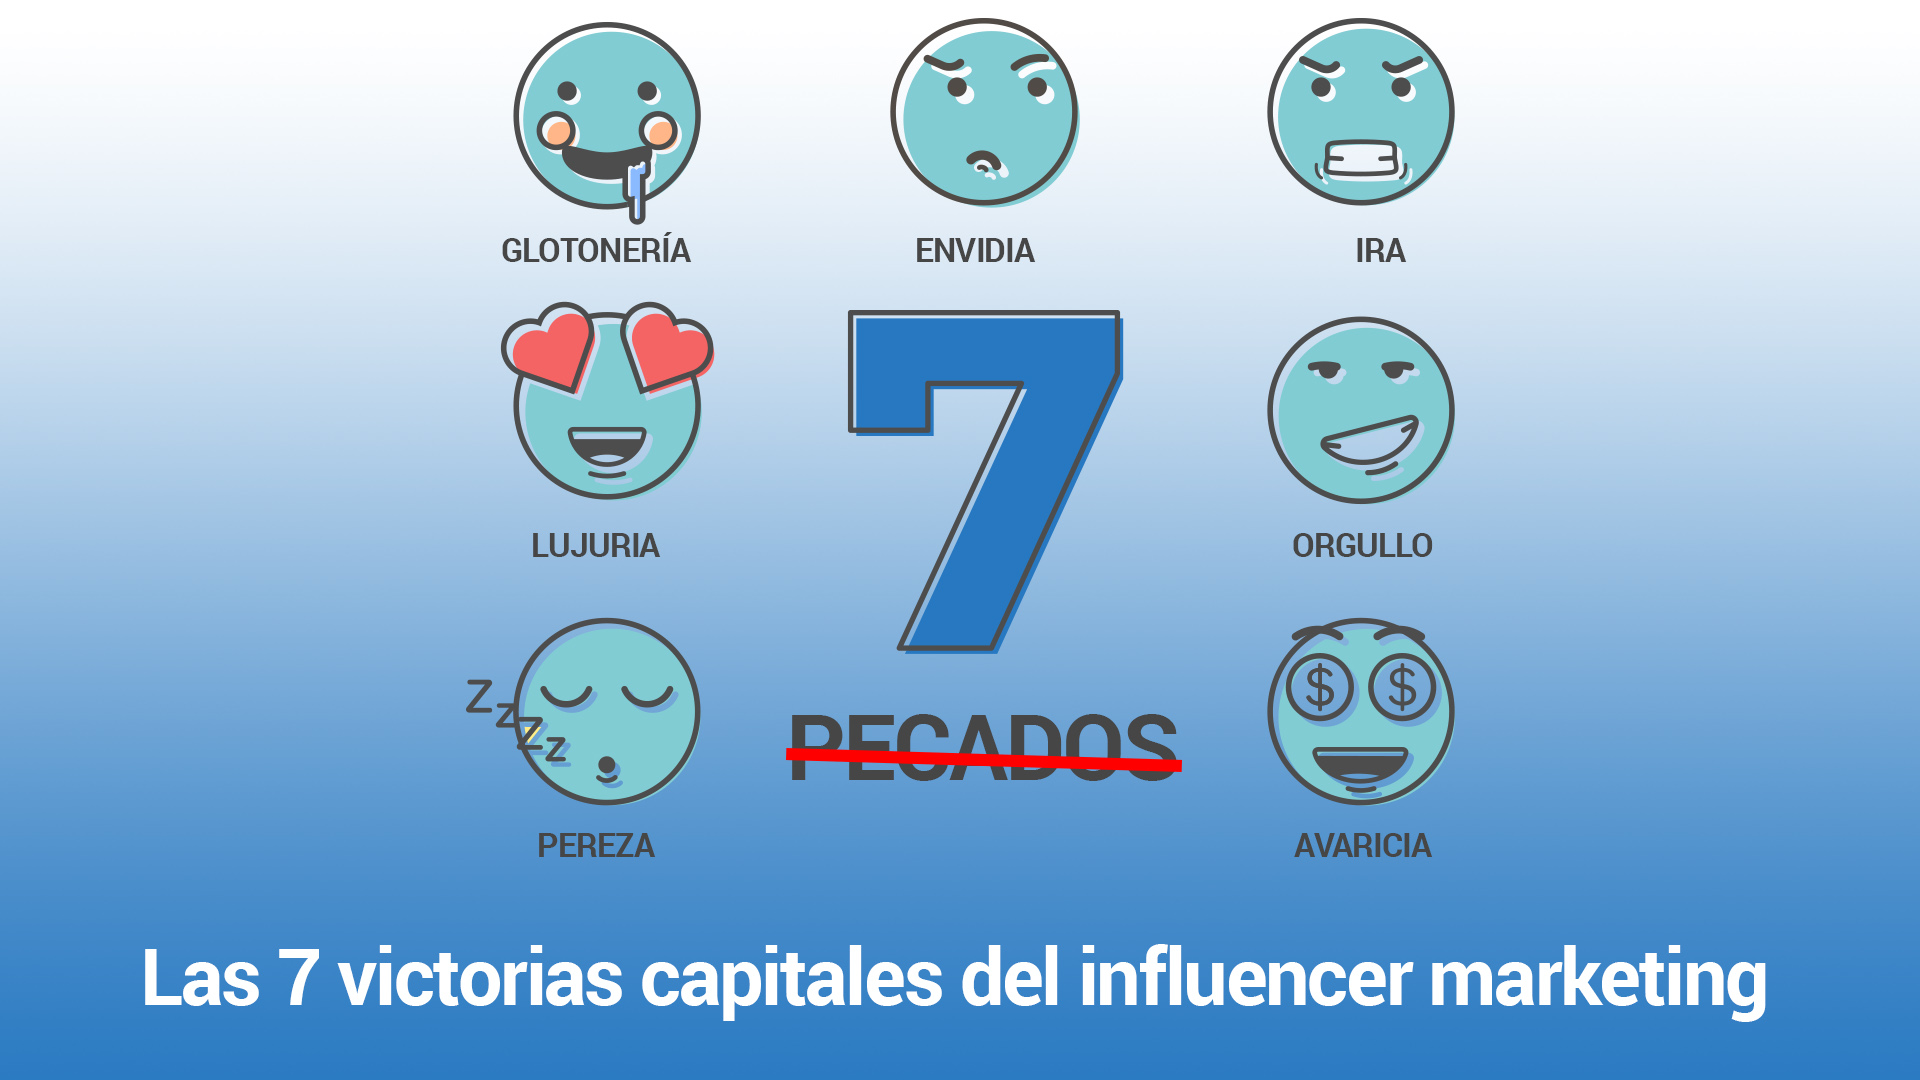 Las 7 victorias capitales del marketing de influencia